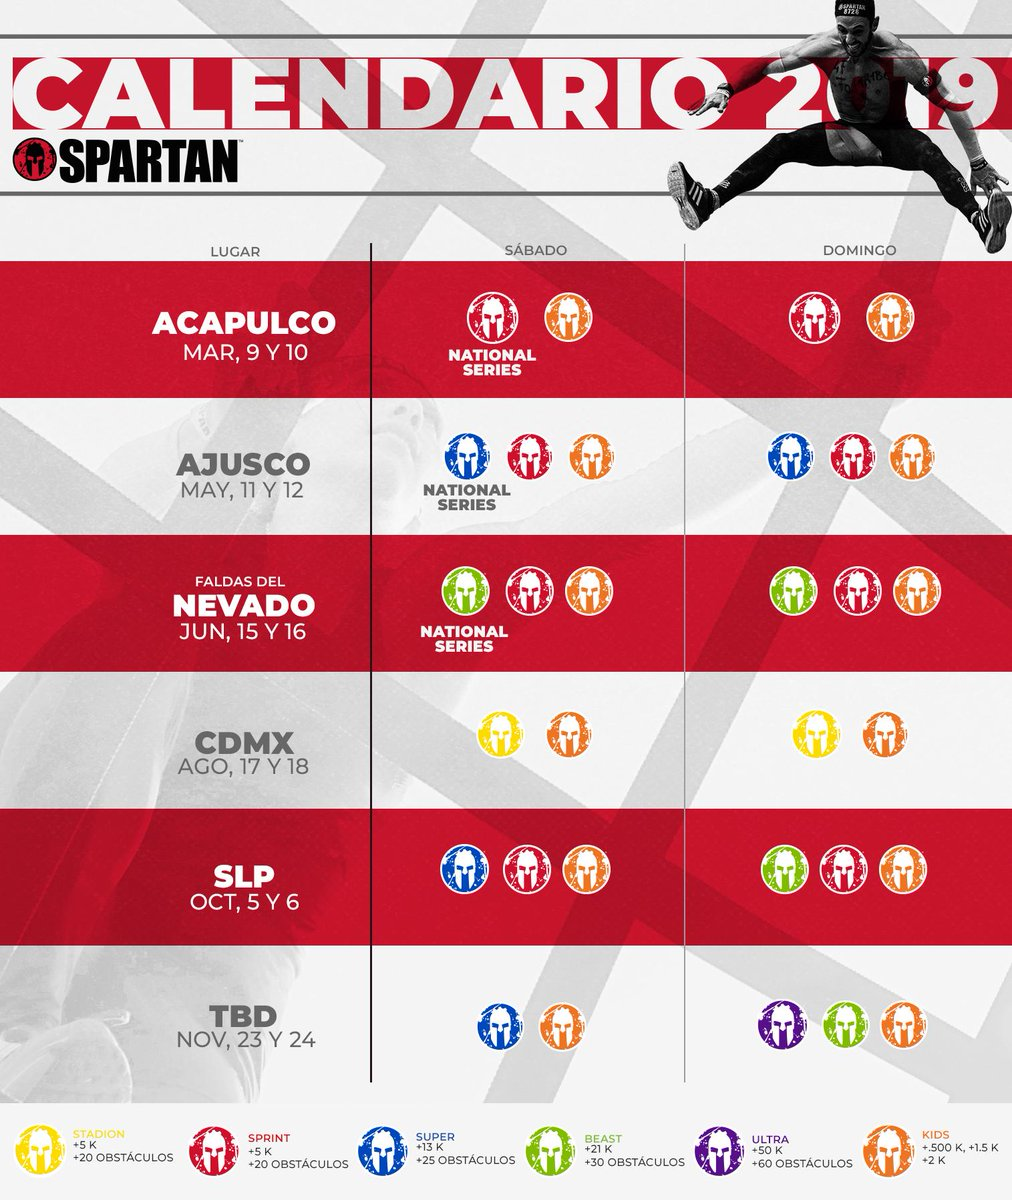 Carreras De Obstaculos Calendario.Spartan Mexico On Twitter La Fecha Para El Trifecta